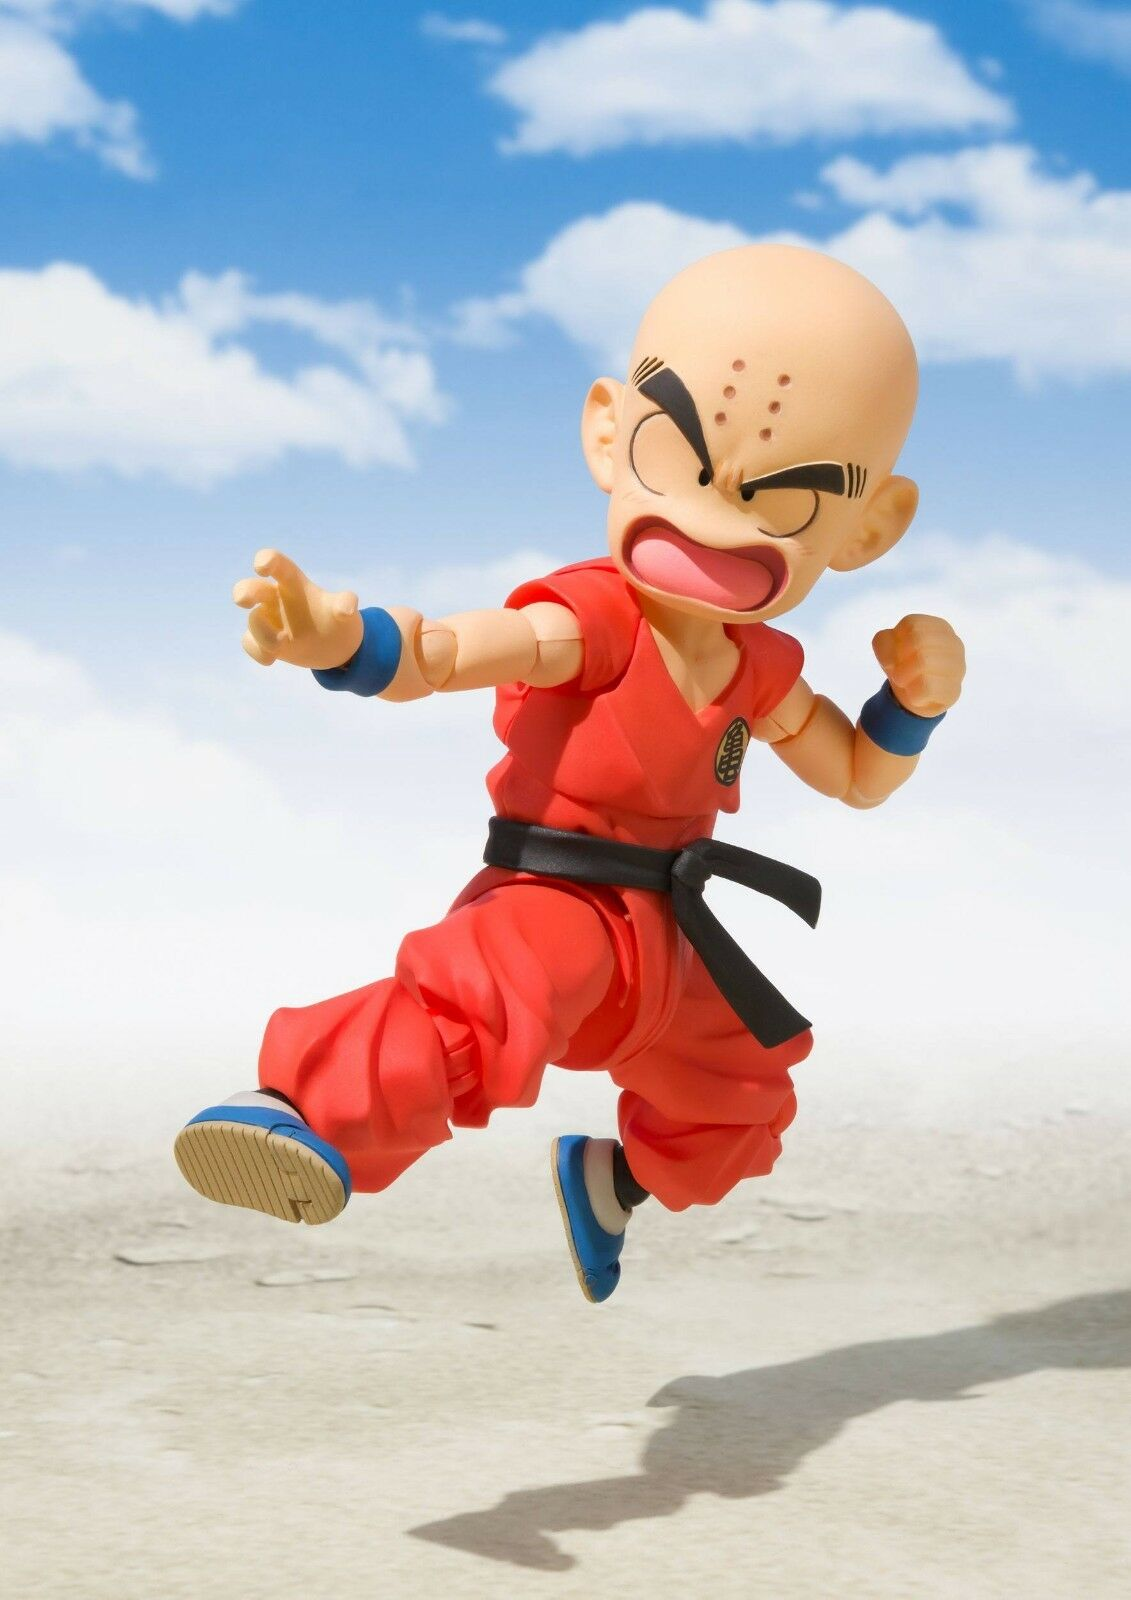 PREORDINE Dragonball S.H. Figuarts Action Figure Krillin  The Early Years